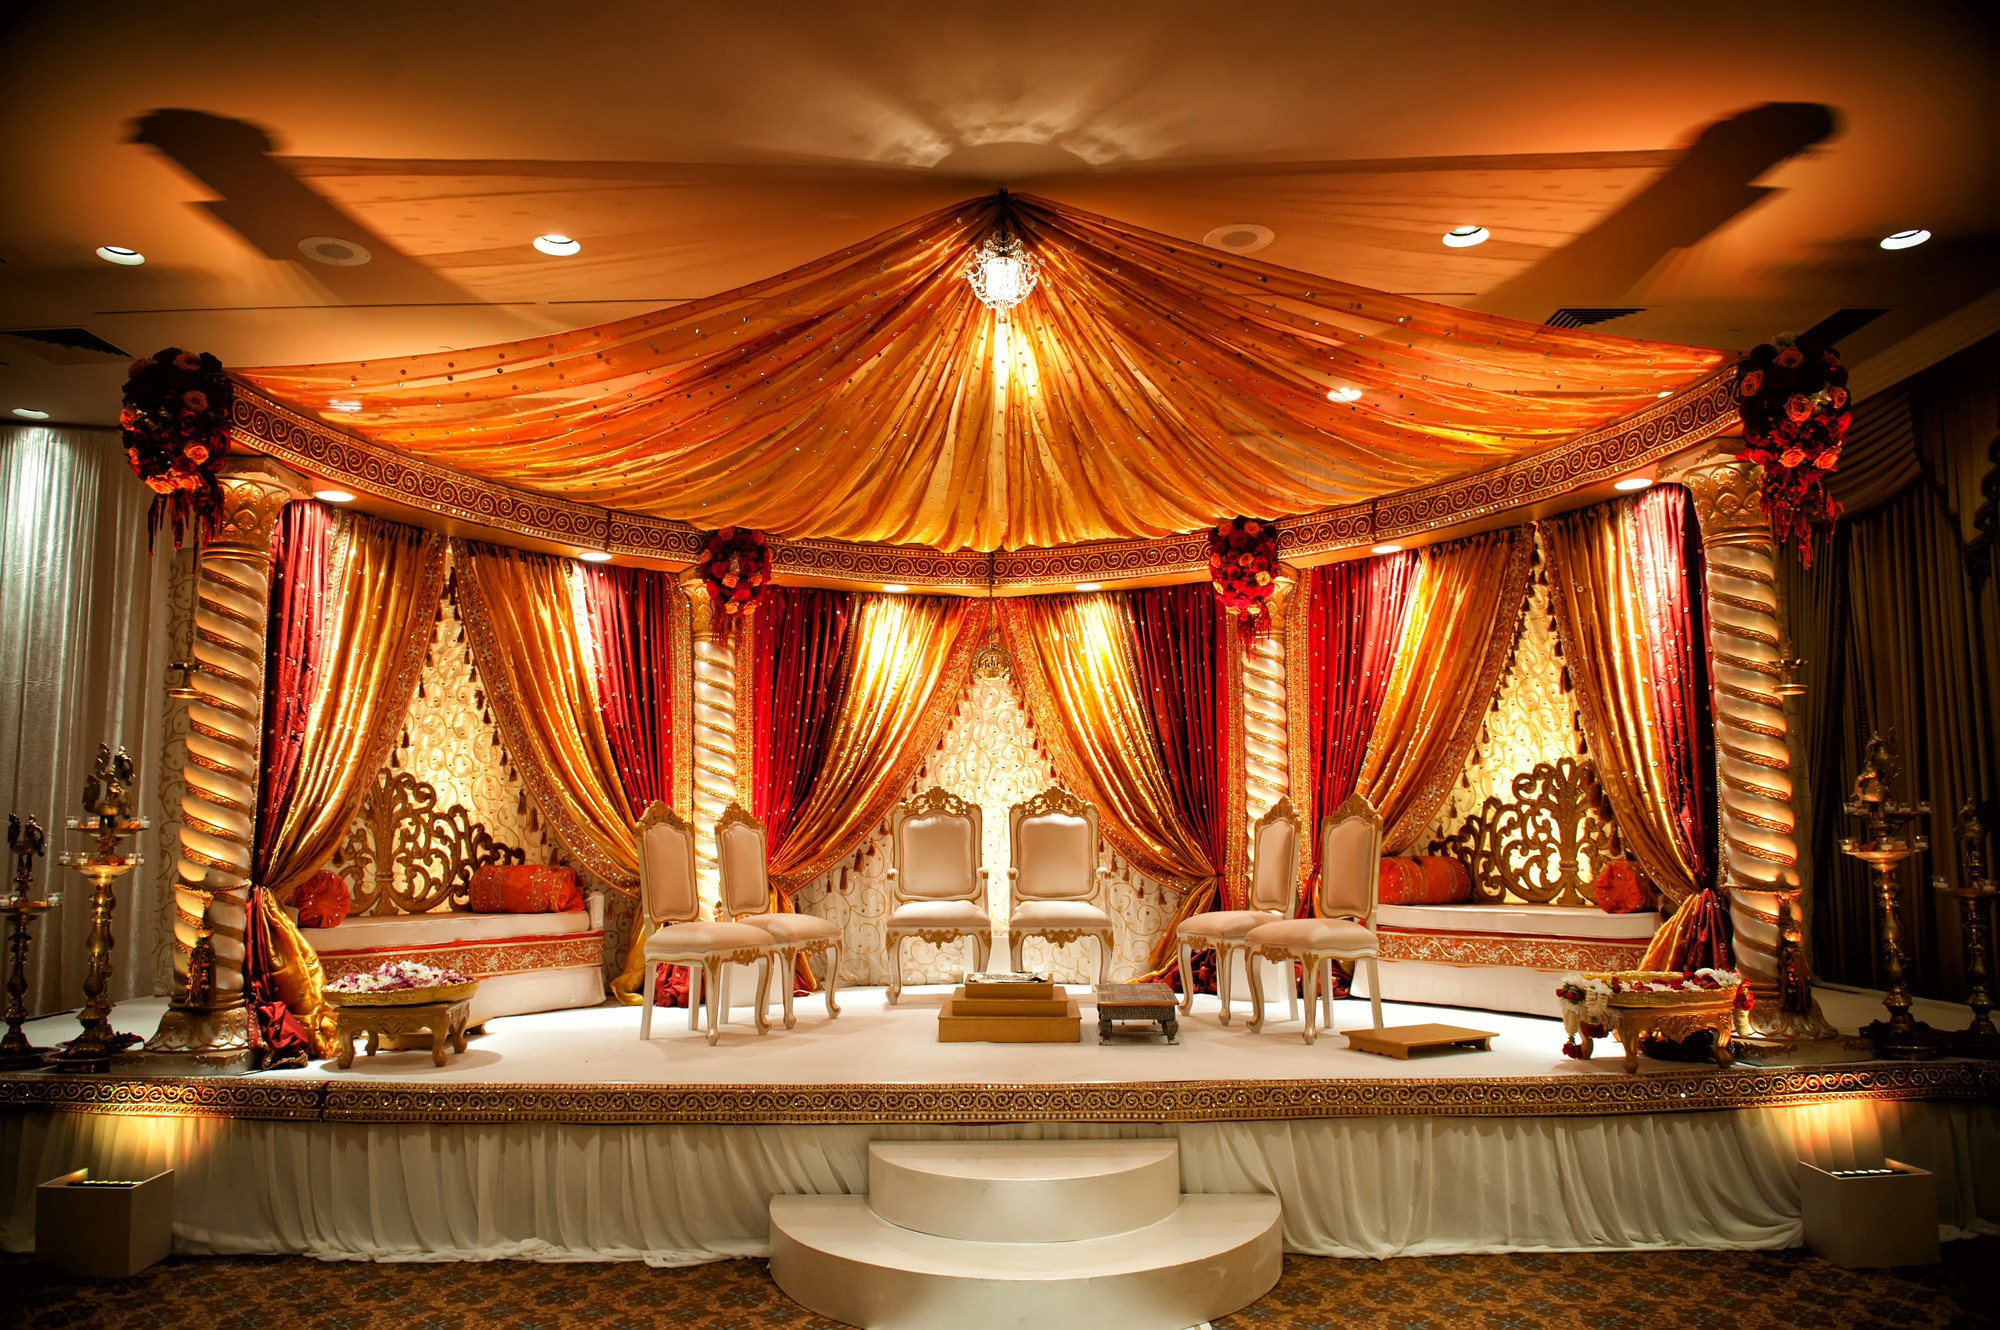 Top 10 Wedding Venue Recommendations in and around Jaipur